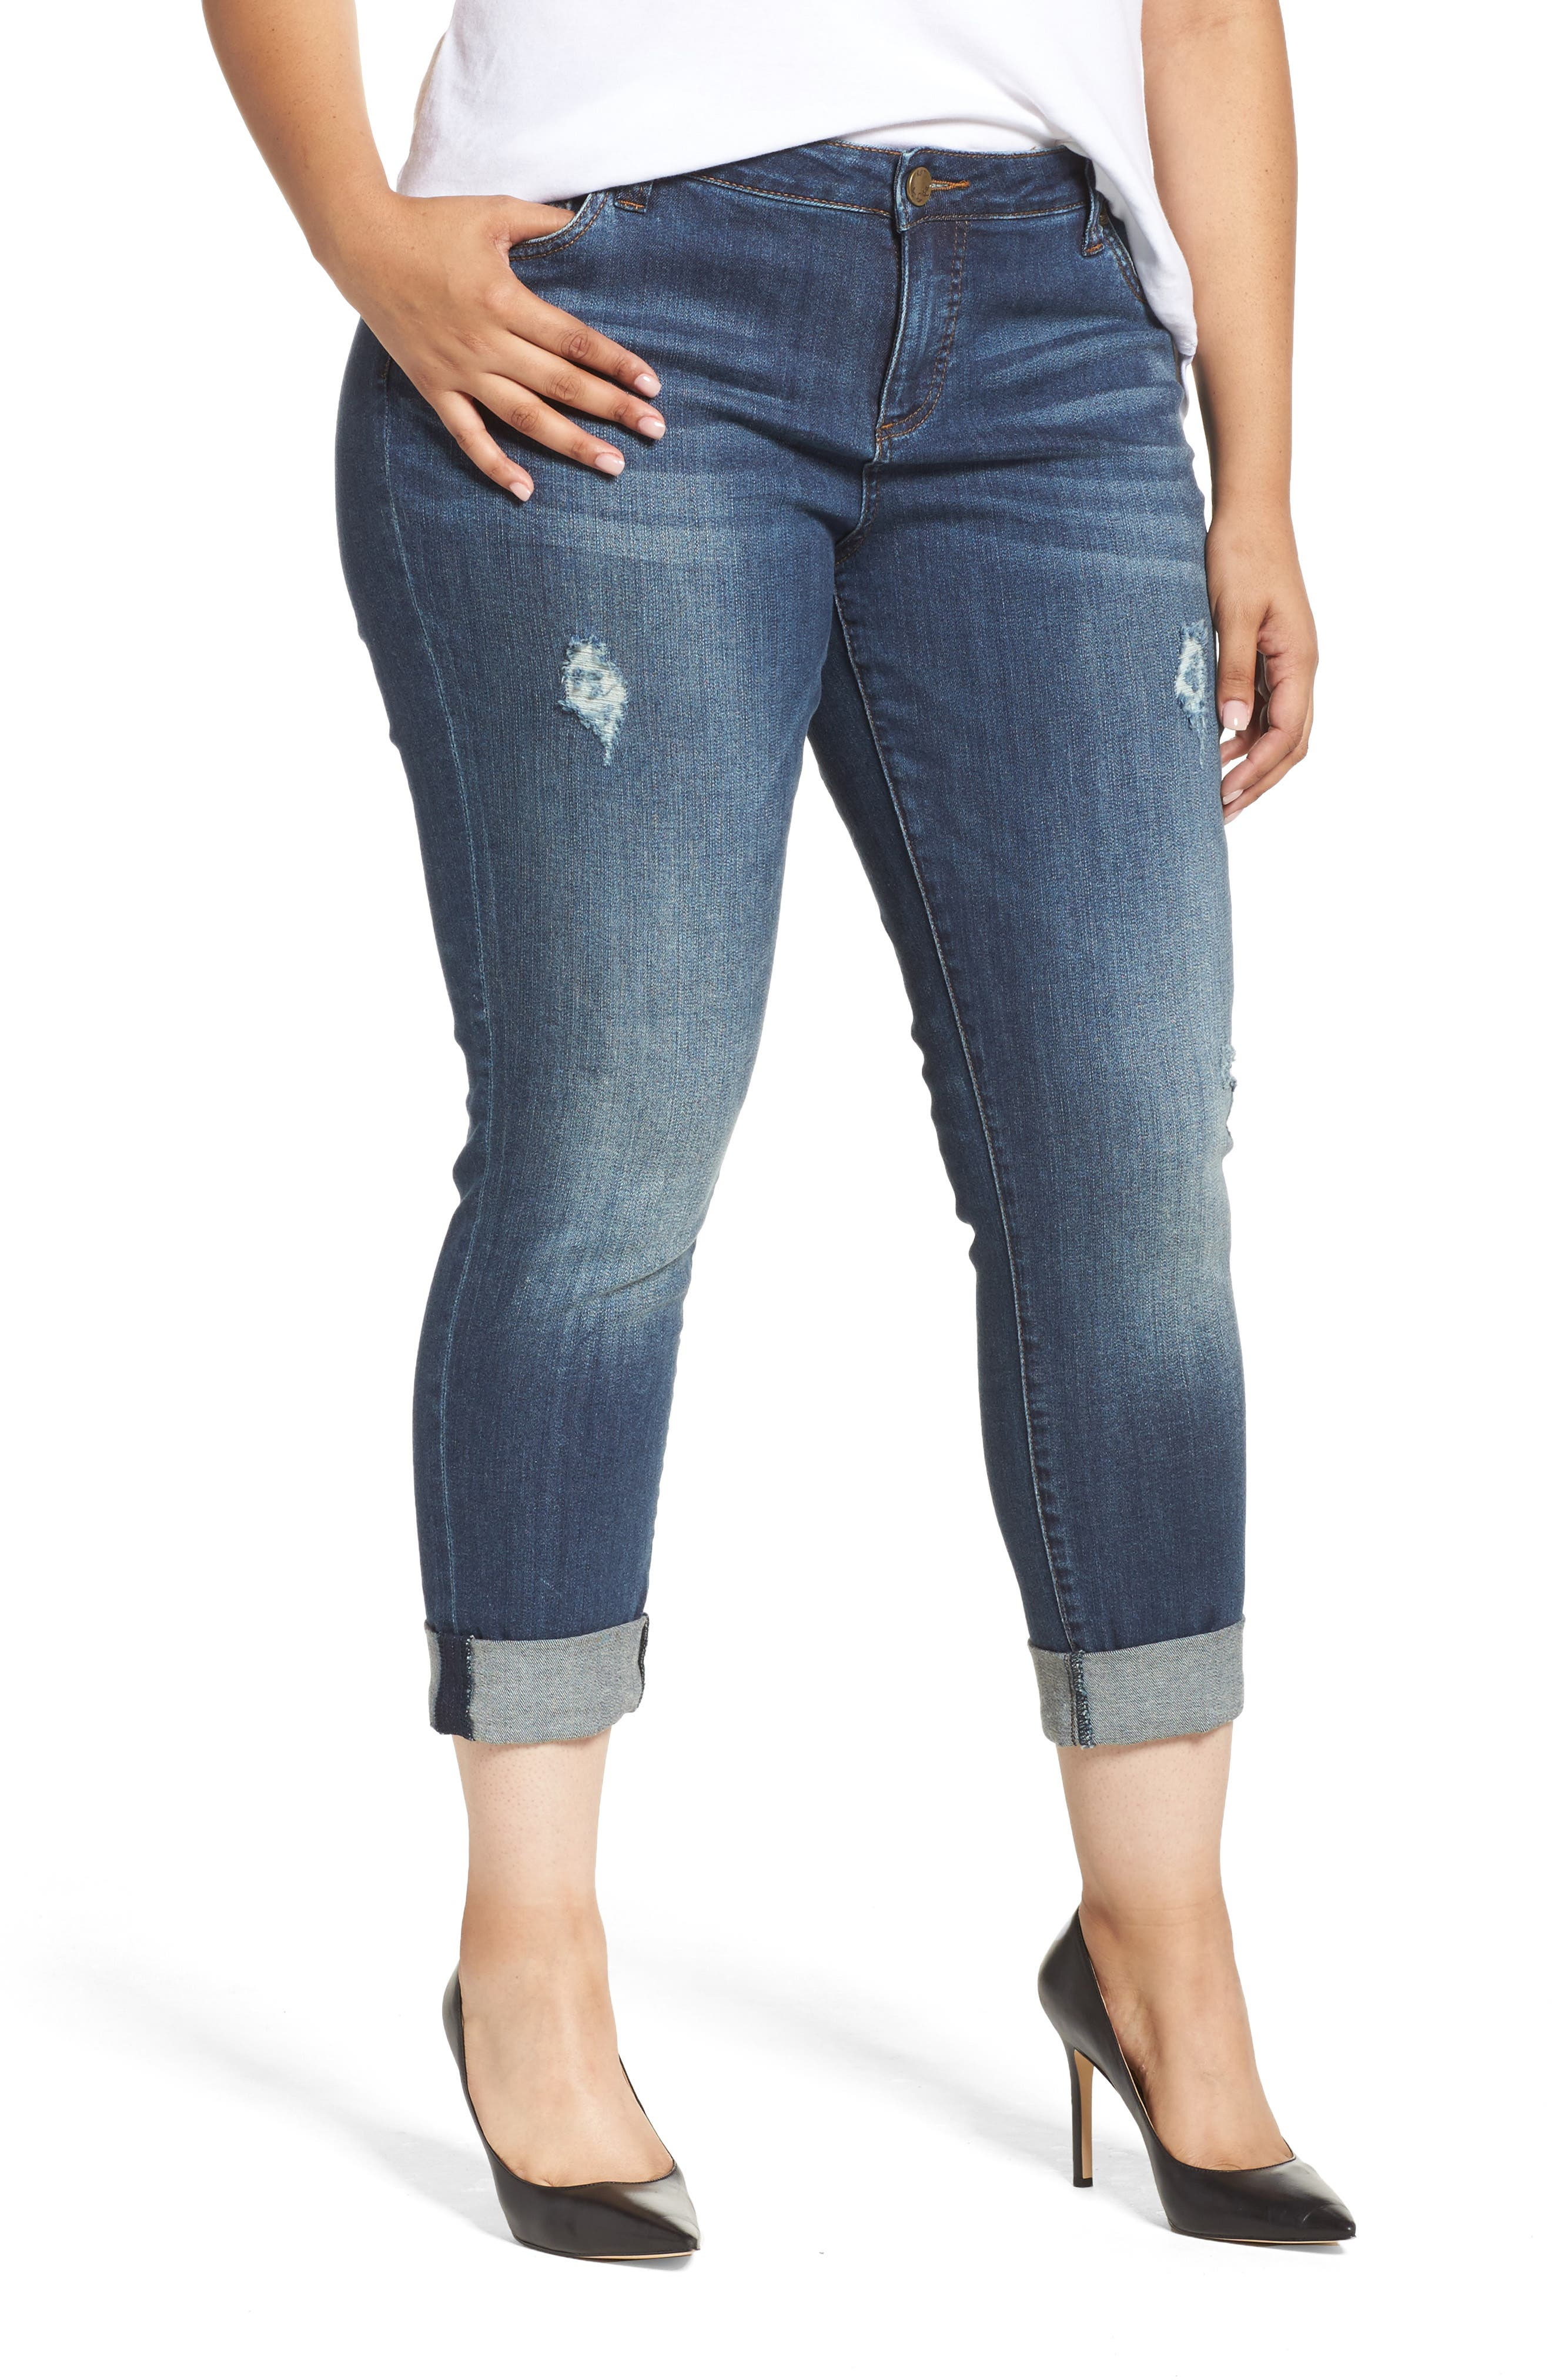 Alternate Image 1 Selected - KUT from the Kloth Catherine Ripped Boyfriend Jeans (Allowing) (Plus Size)